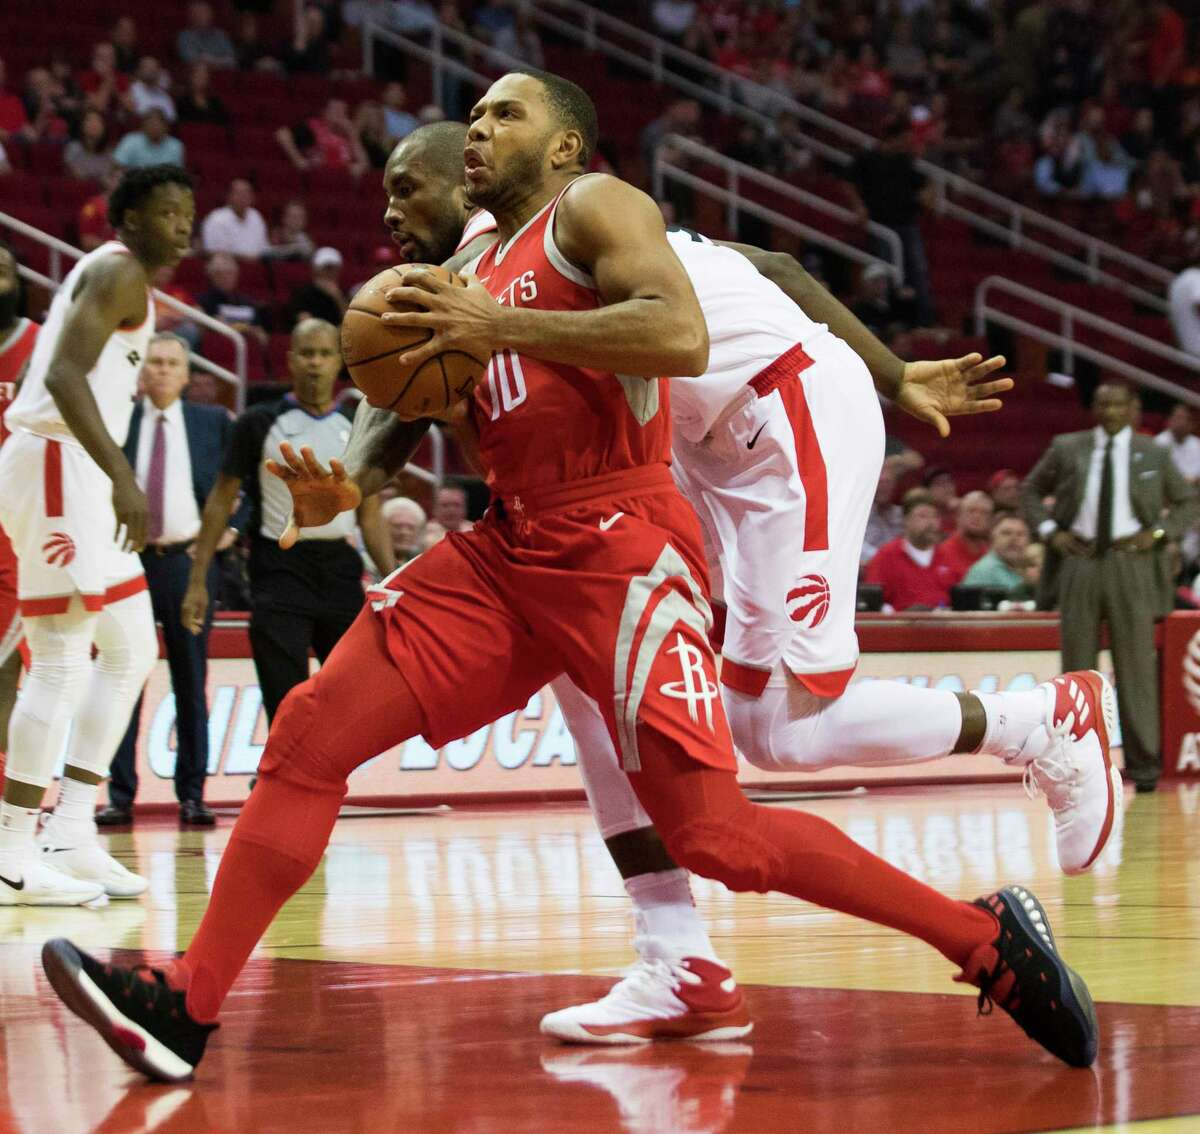 Houston Rockets guard Eric Gordon (10) drives to the basket during the first quarter against the Toronto Raptors, Tuesday, Nov. 14, 2017, in Houston.